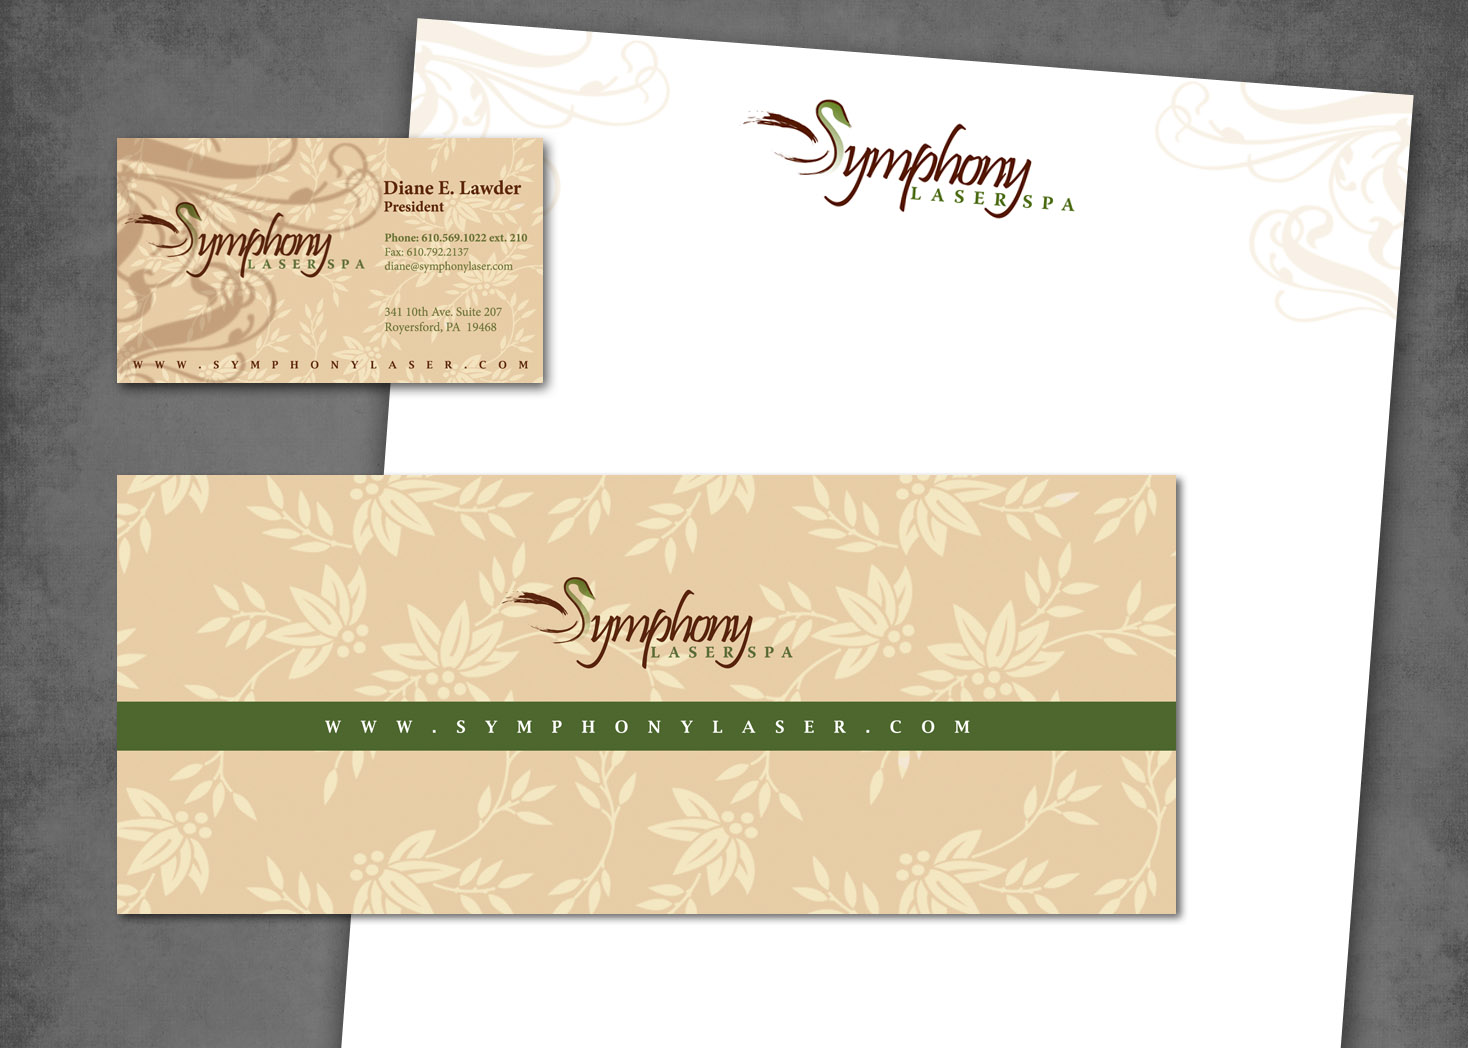 Symphony Laser Spa - Collateral Design - Lehman Design